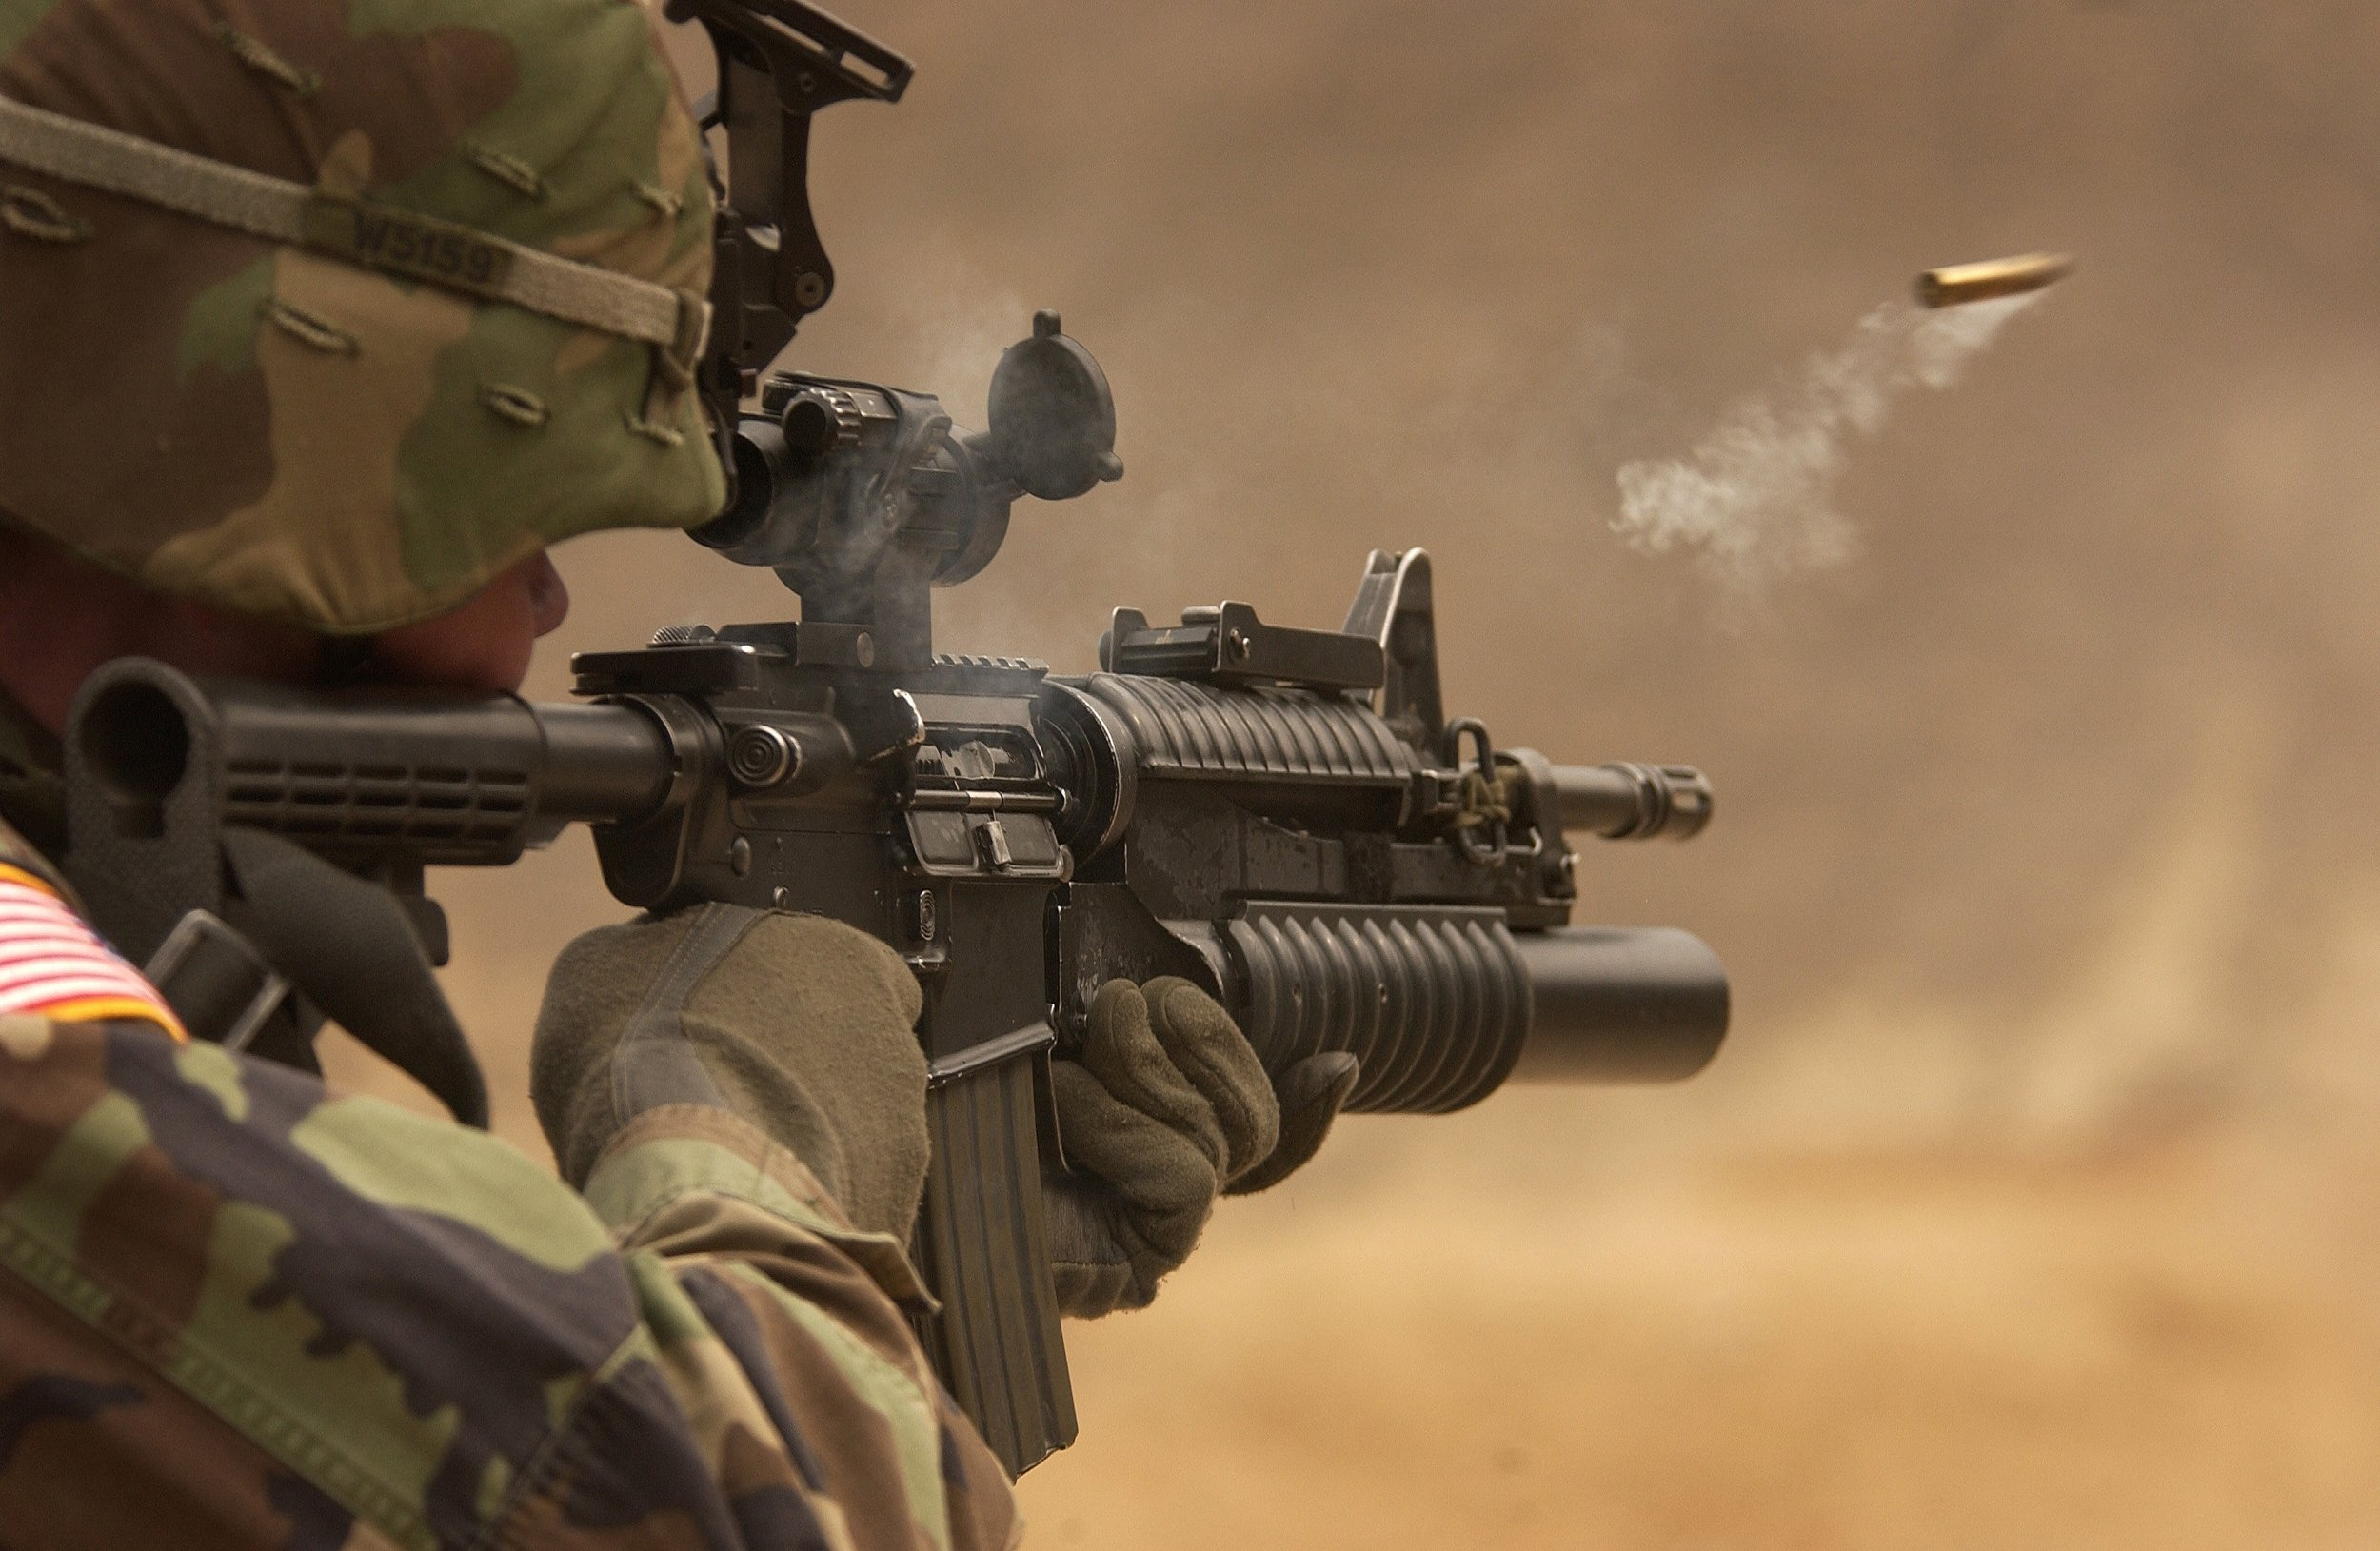 automatic-weapon-bullet-camouflage-78783.jpg